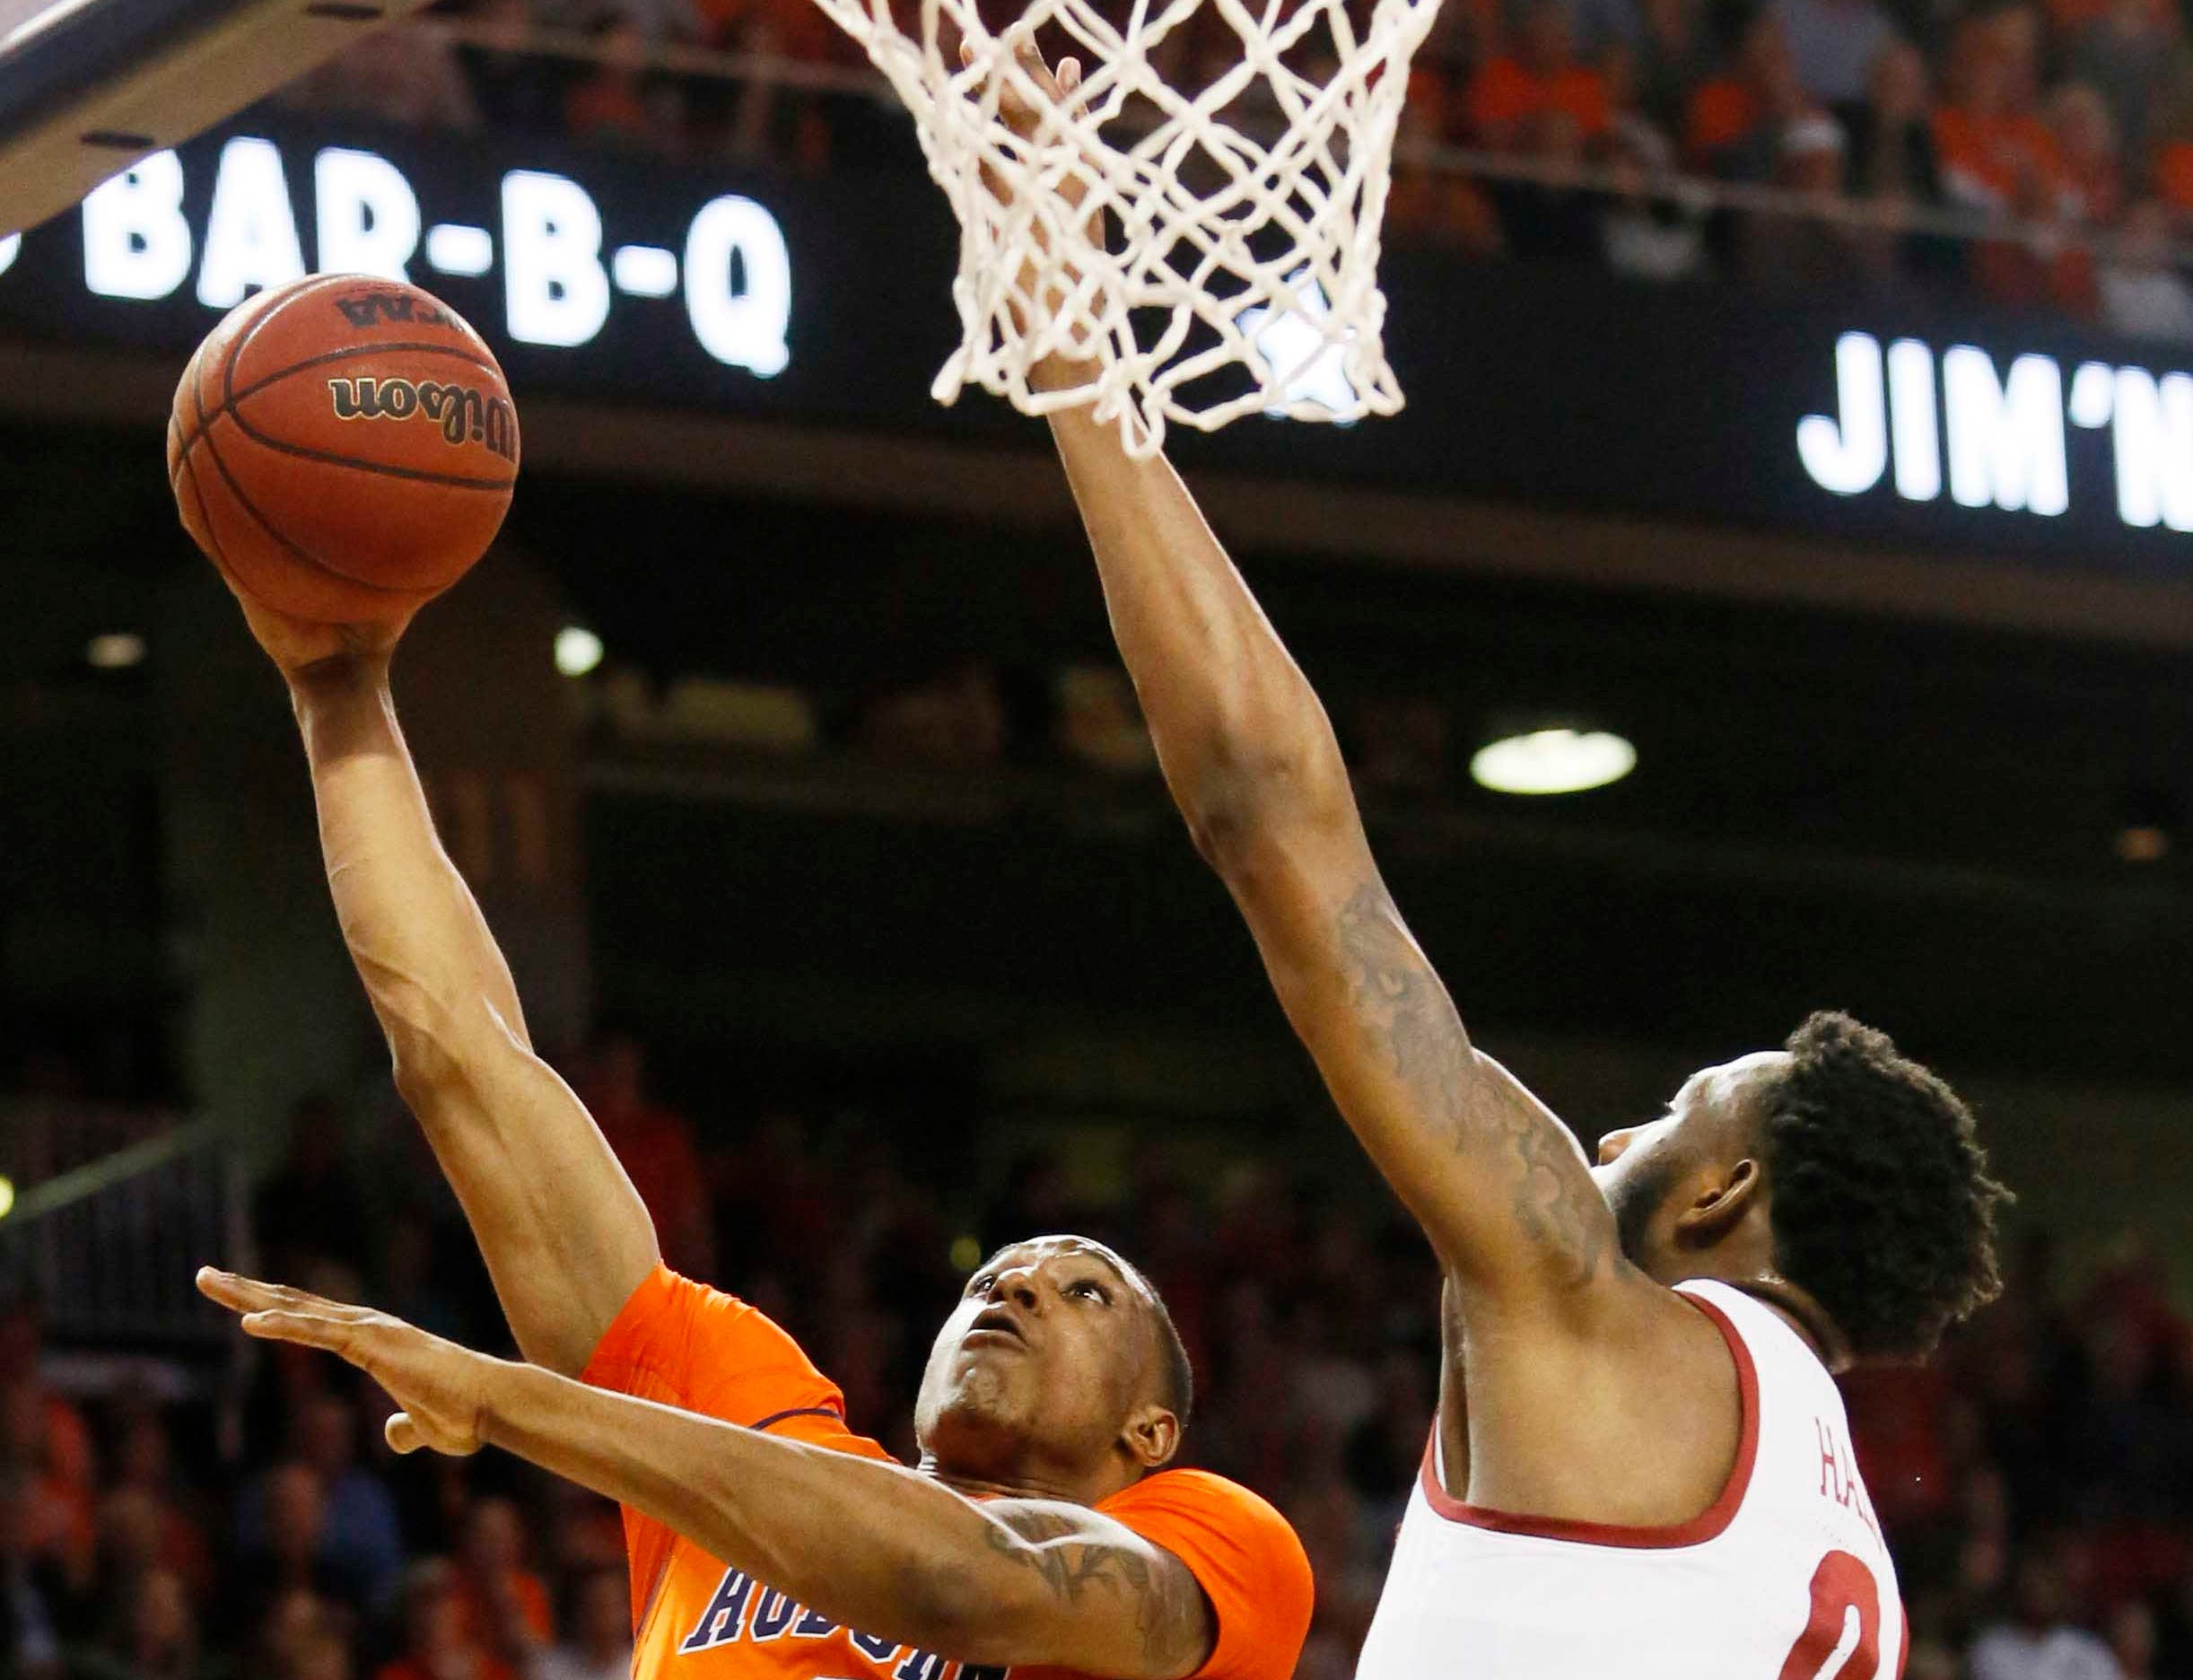 Feb 2, 2019; Auburn, AL, USA; Auburn Tigers forward Horace Spencer (0) takes a shot against Alabama Crimson Tide forward Donta Hall (0) during the second half at Auburn Arena. Mandatory Credit: John Reed-USA TODAY Sports